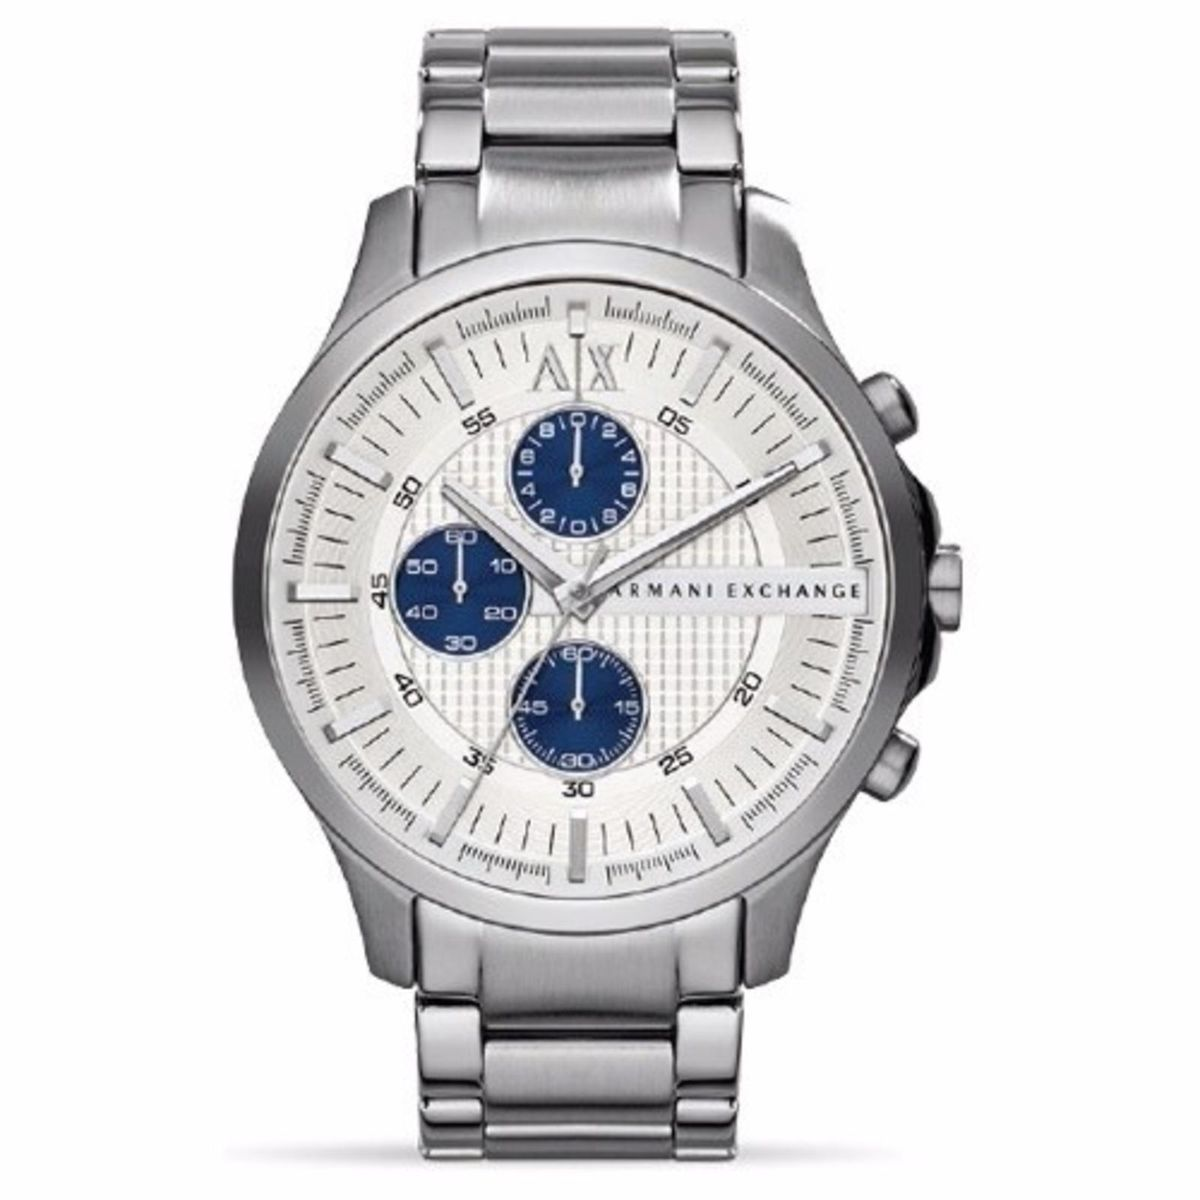 6580f9063f9 relogio armani exchange ax2136 branco caixa manual - relógios armani  exchange